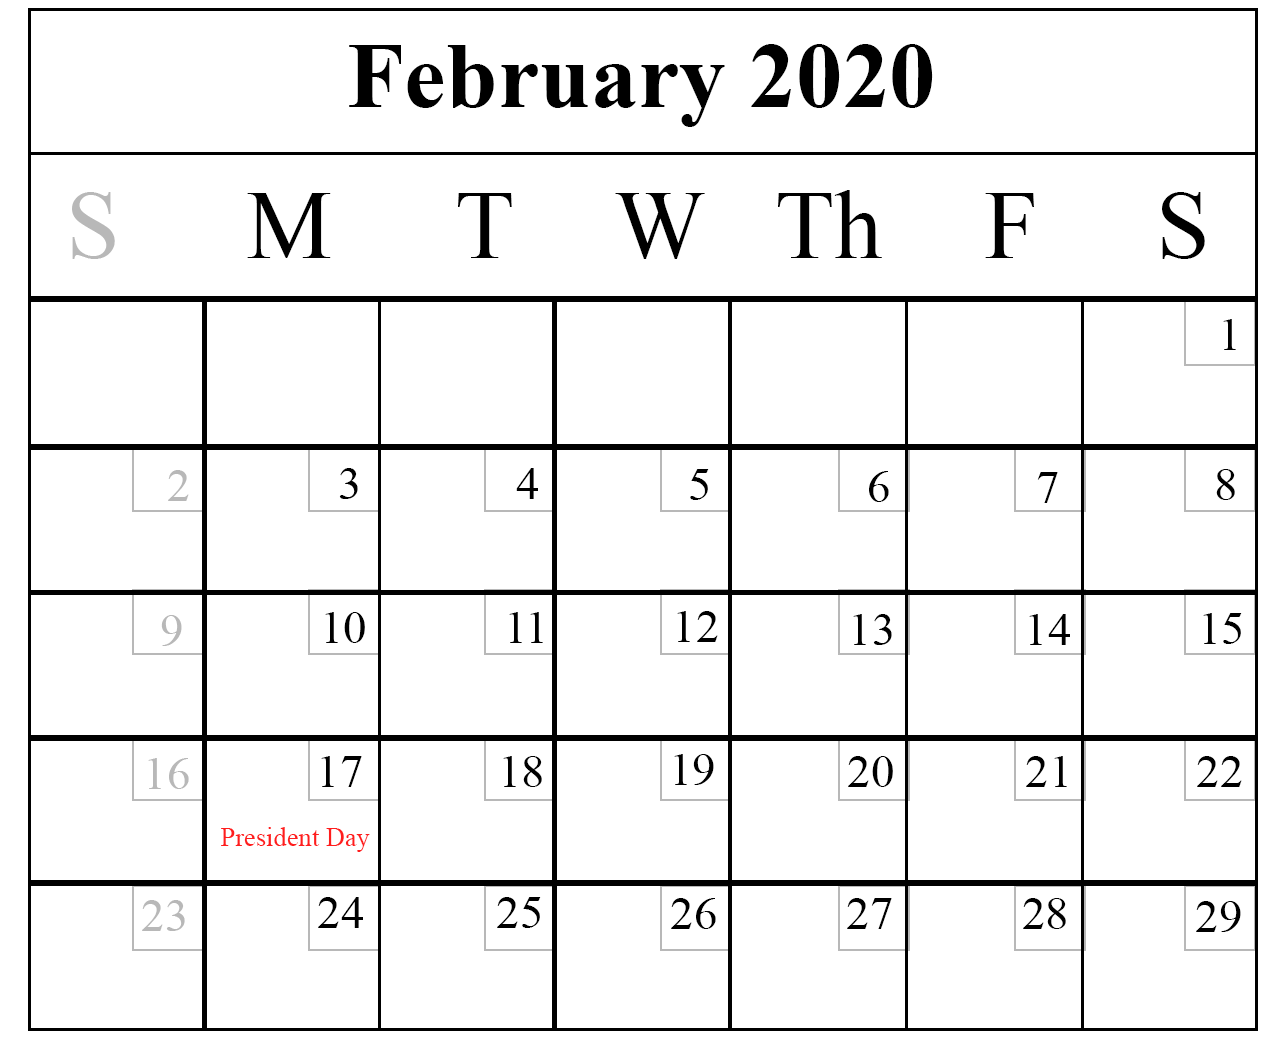 February 2020 Holidays Calendar UK